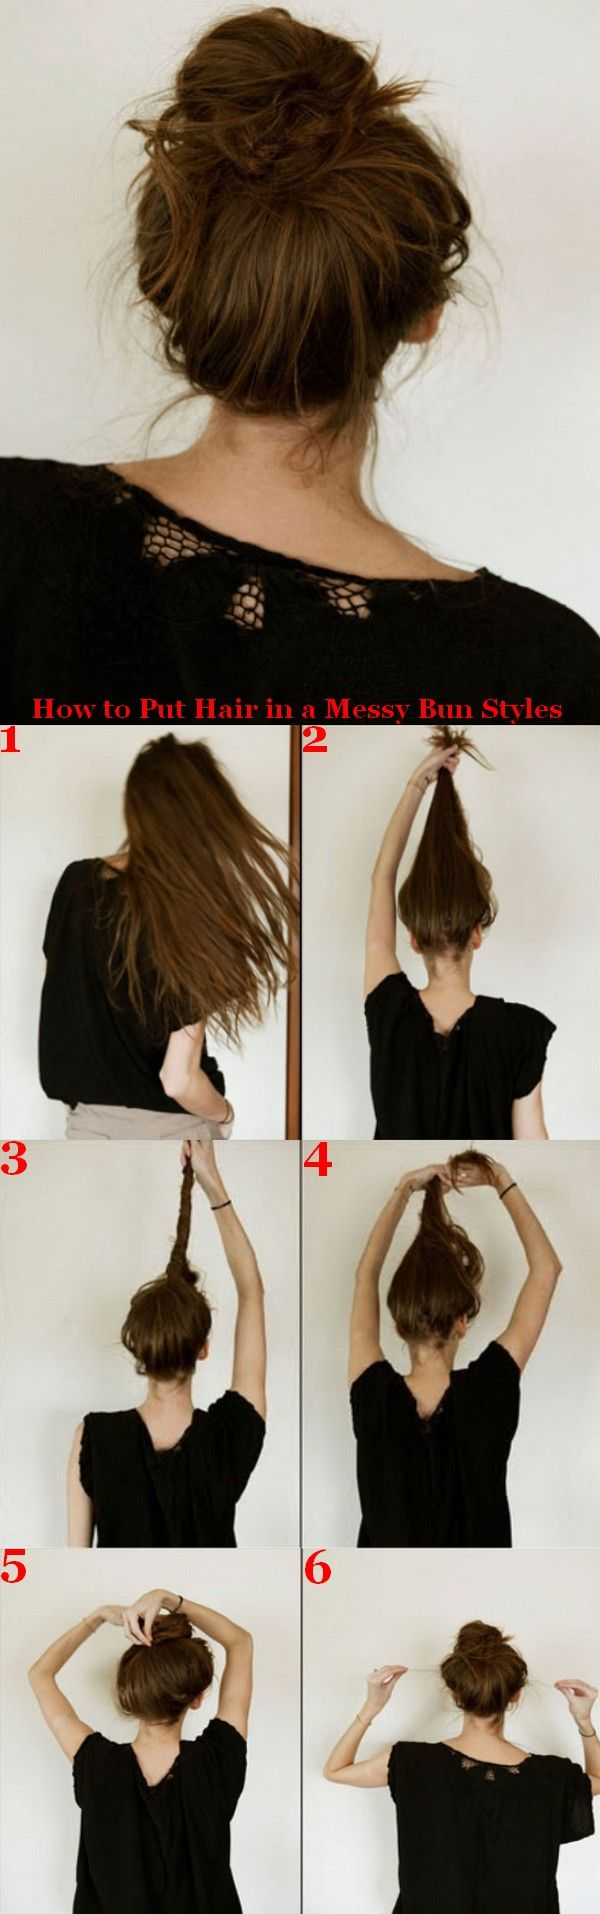 How To Put Hair In A Messy Bun Styles Lazy Day Hairstyles Hair Beauty Hair Styles